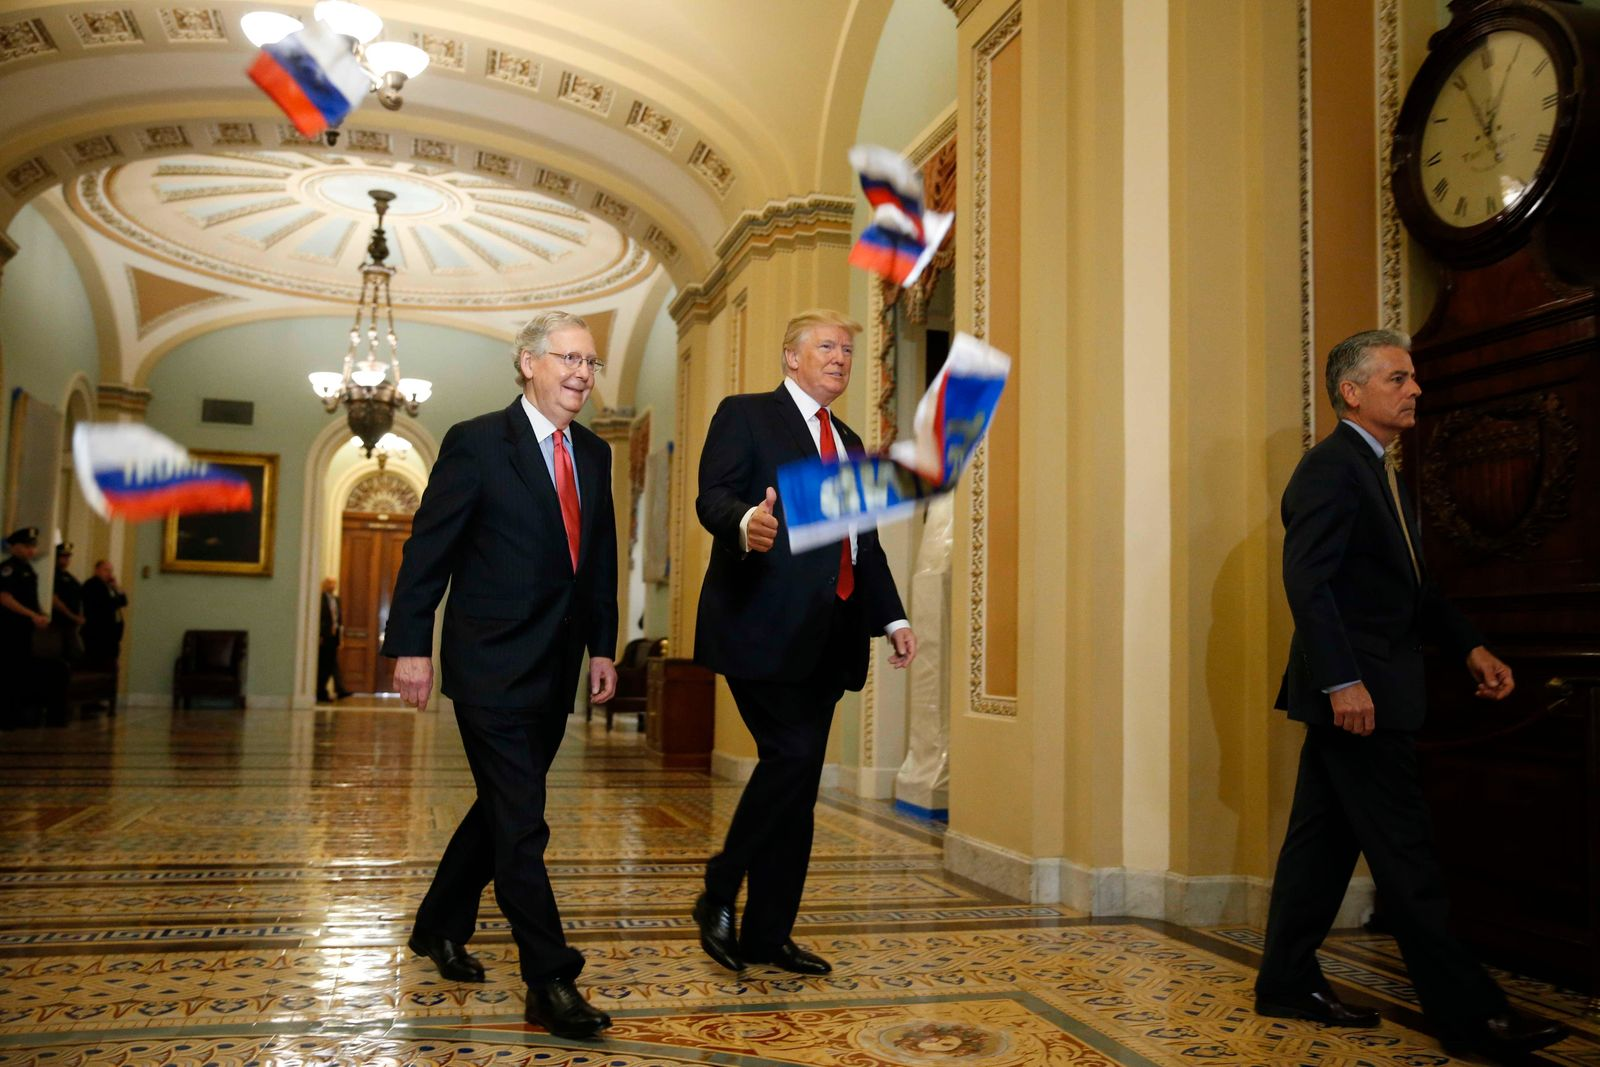 U.S. President Trump walks with McConnell as he arrives for Senate Republican Policy Committee's weekly policy luncheon meeting on Capitol Hill in Washington